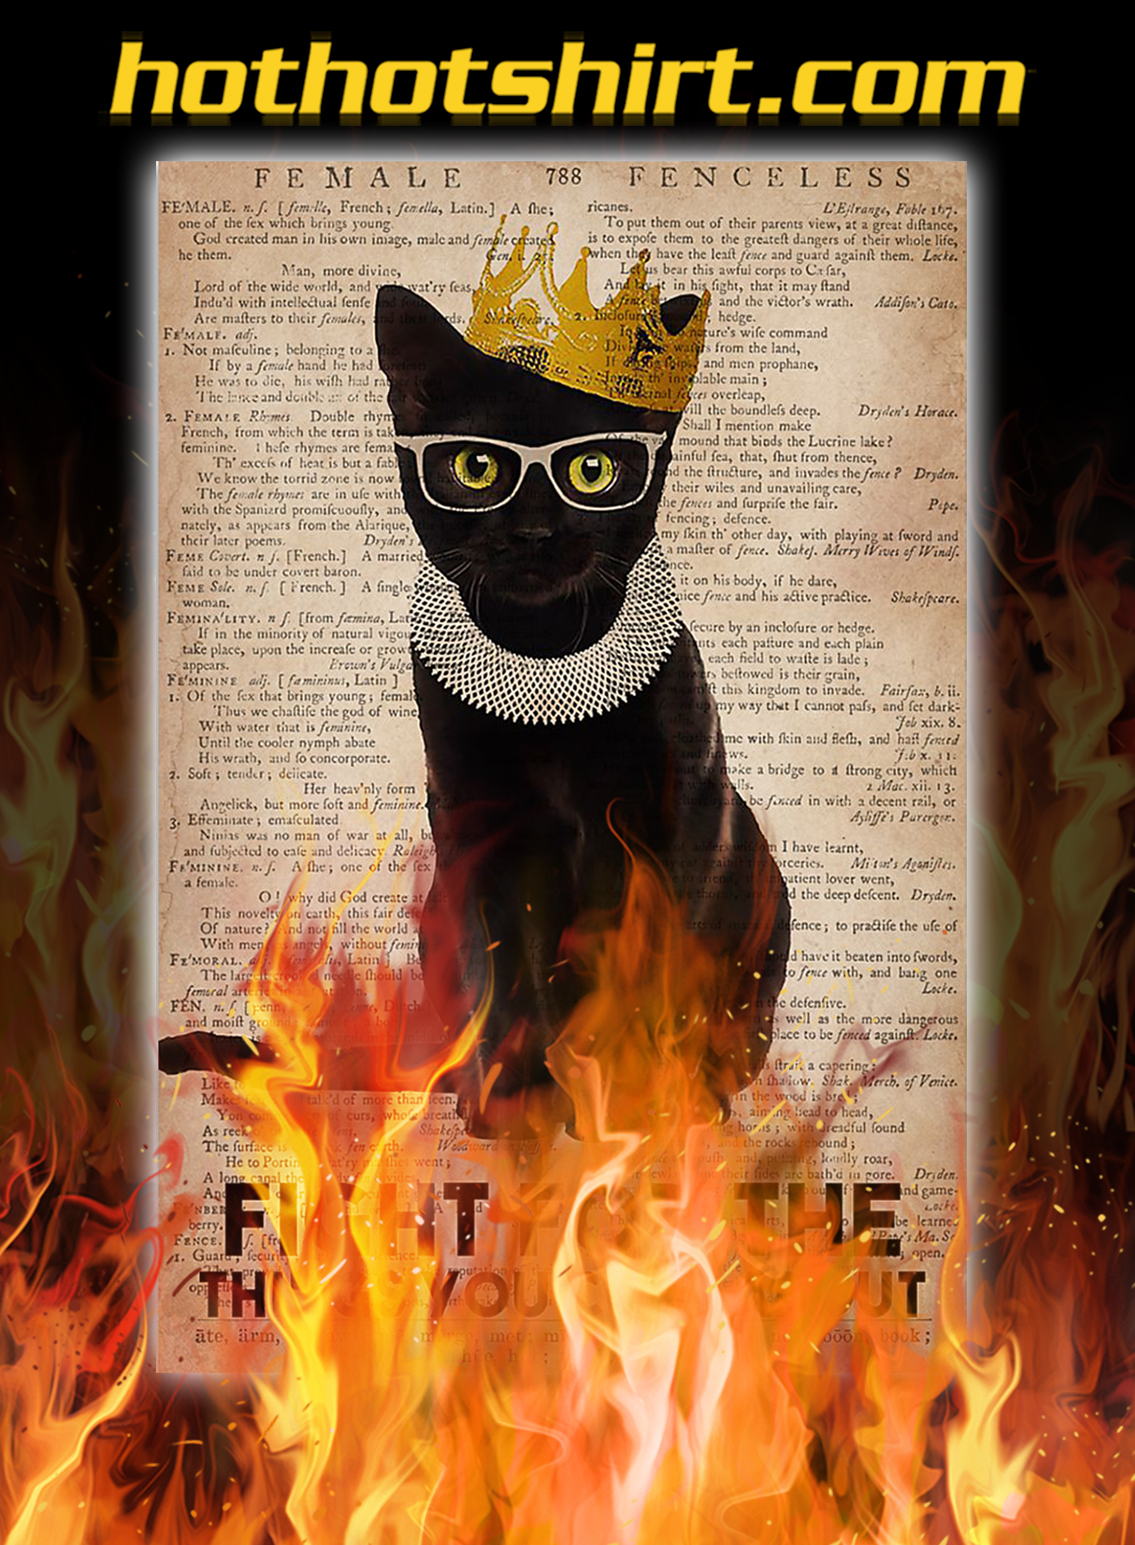 Feminist ruth bader ginsburg cat fight for the things you care about poster - A3